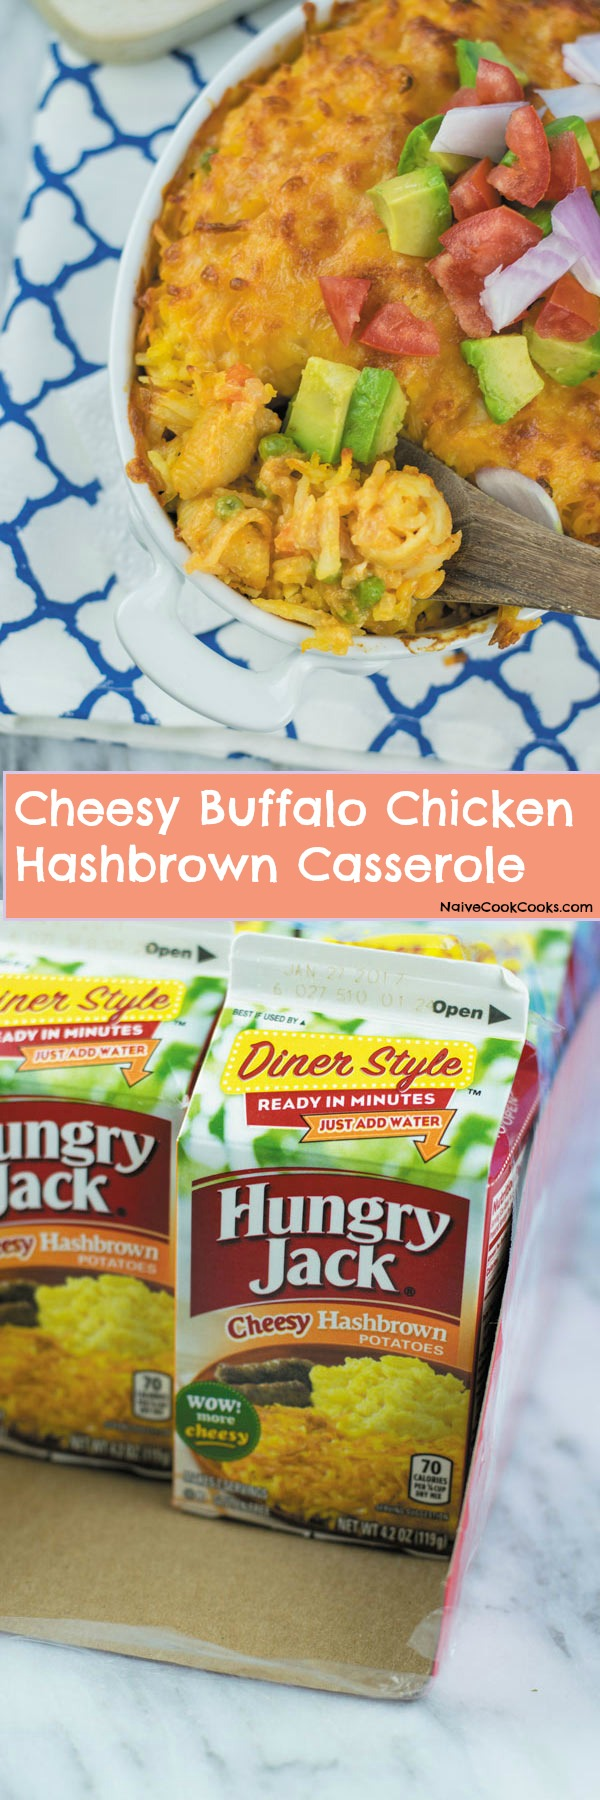 cheesy buffalo chicken hashbrown casserole 2